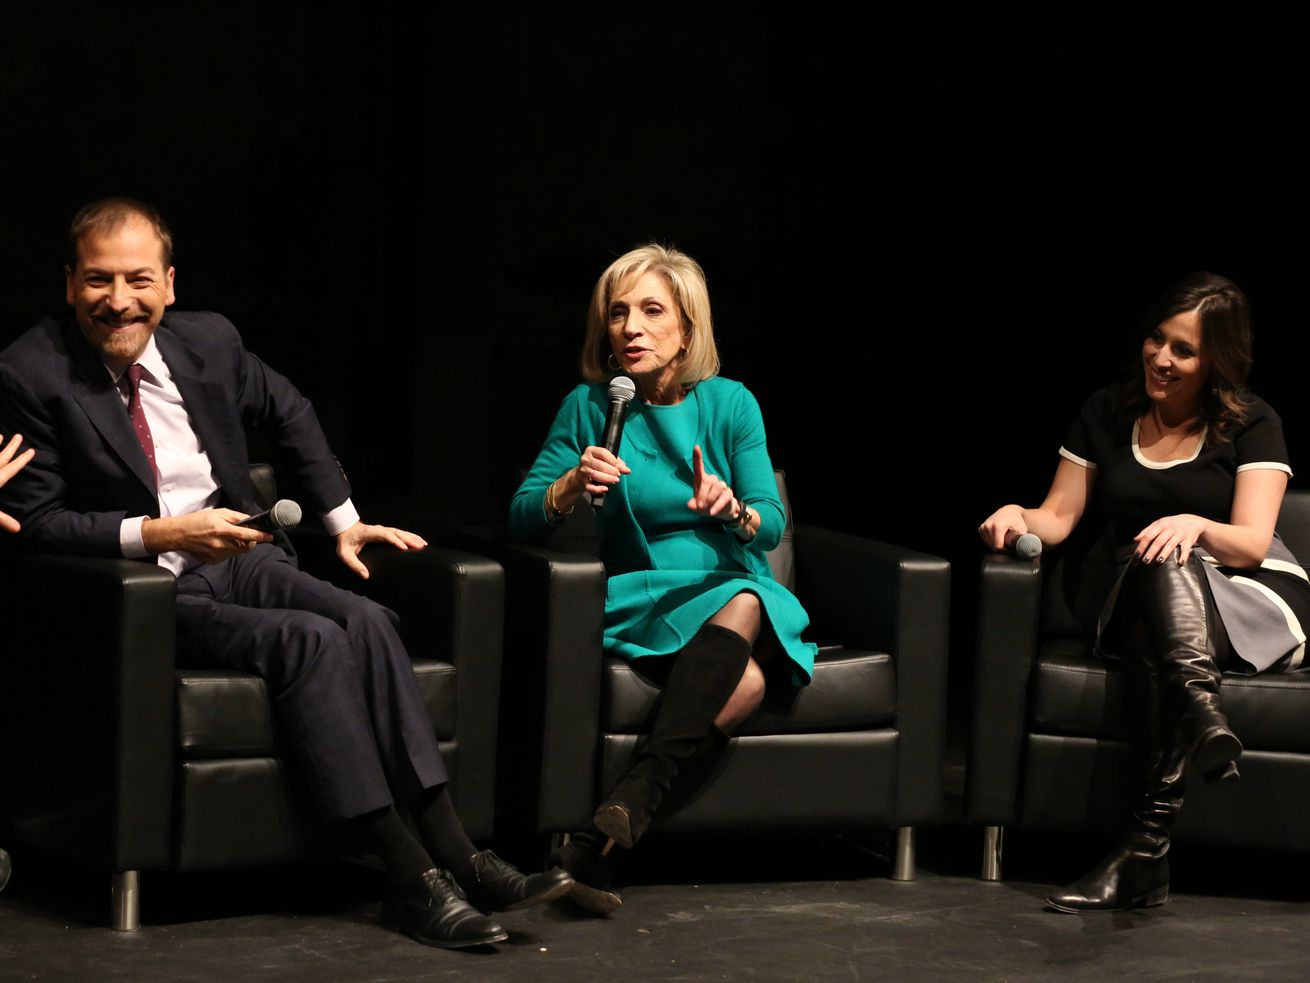 Left to right: Chuck Todd, Andrea Mitchell and Hallie Jackson